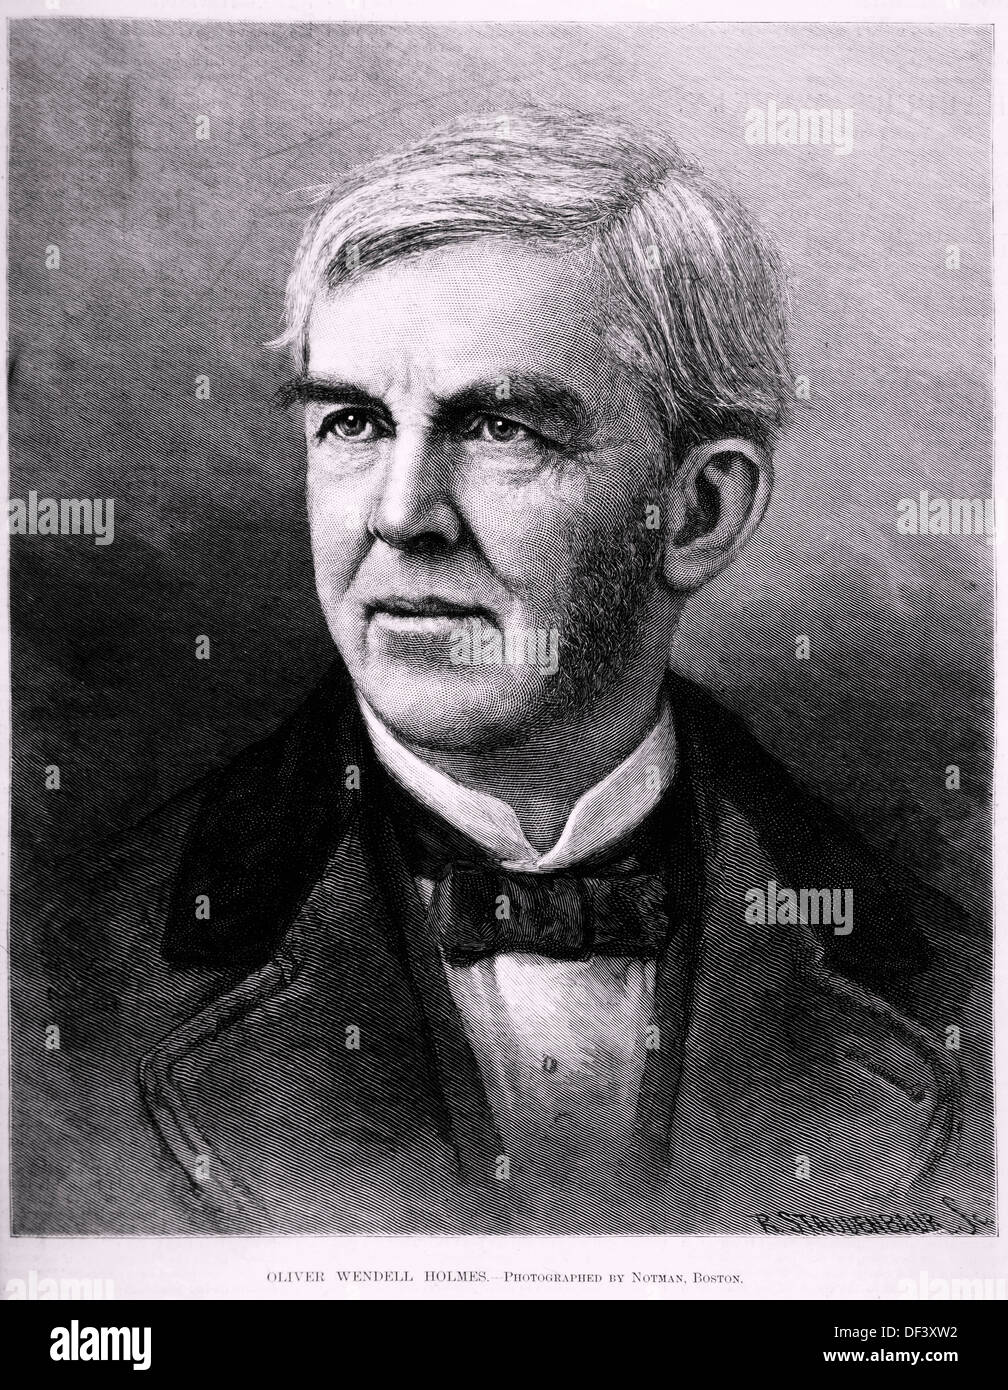 Oliver Wendall Holmes (1809-1894), American Poet and Author, Portrait - Stock Image